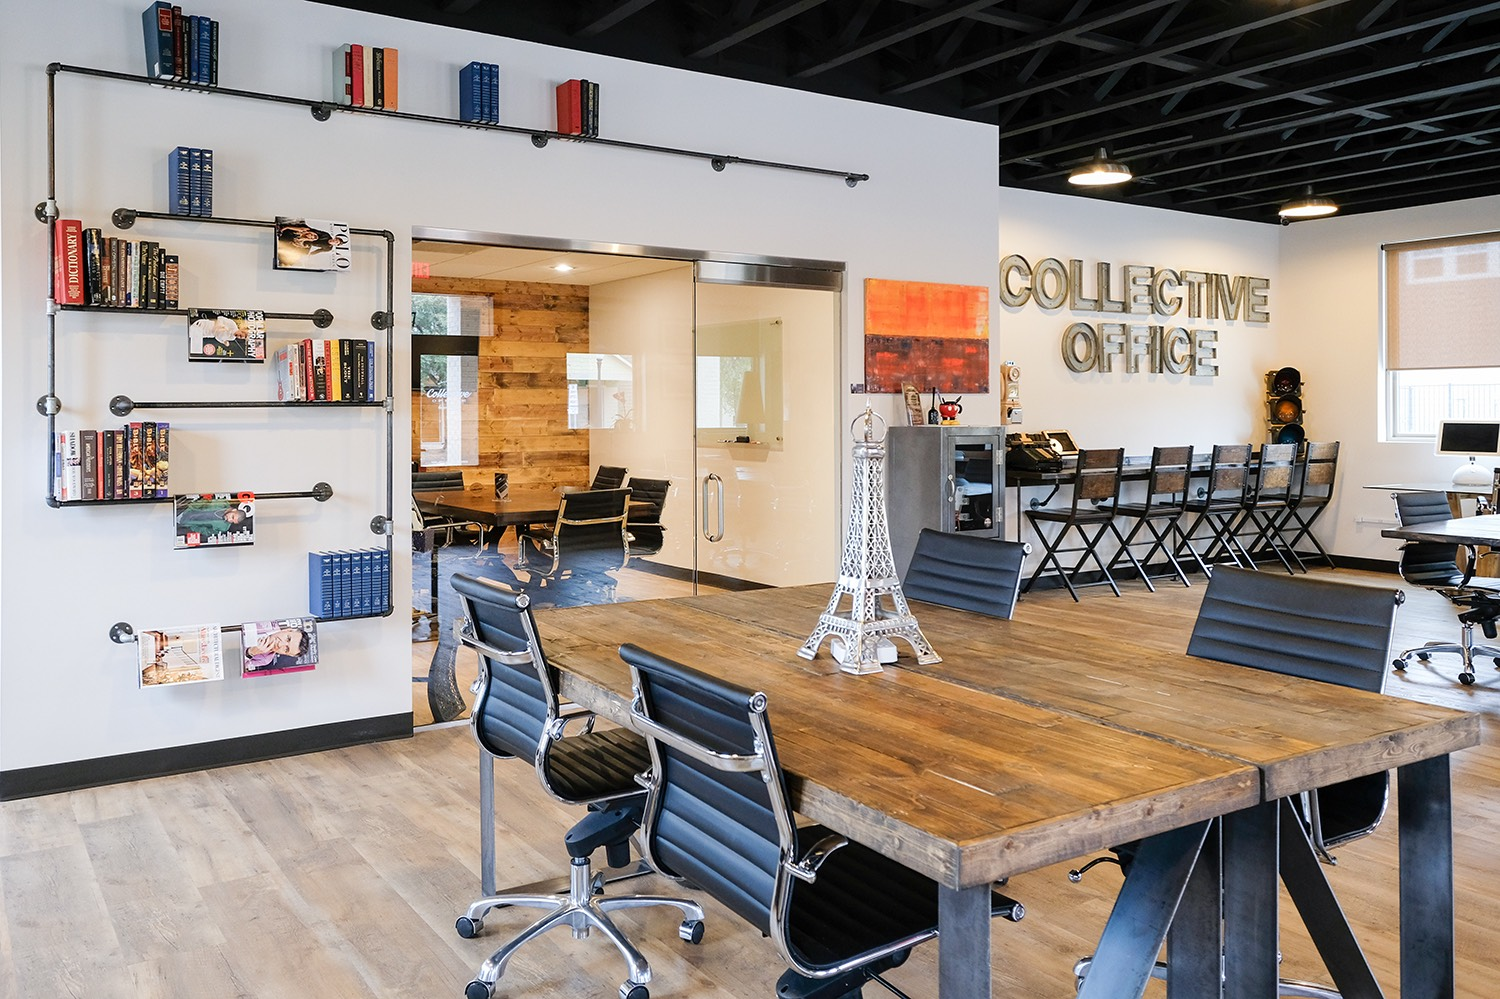 Common Space Daily Rate$25 / Day - Enjoy our common areas weekdays from 8:30am to 5:00pm. Rate includes any open table, desk or lounge. Super fast fiber WiFi, Coffee and filtered water are always included.